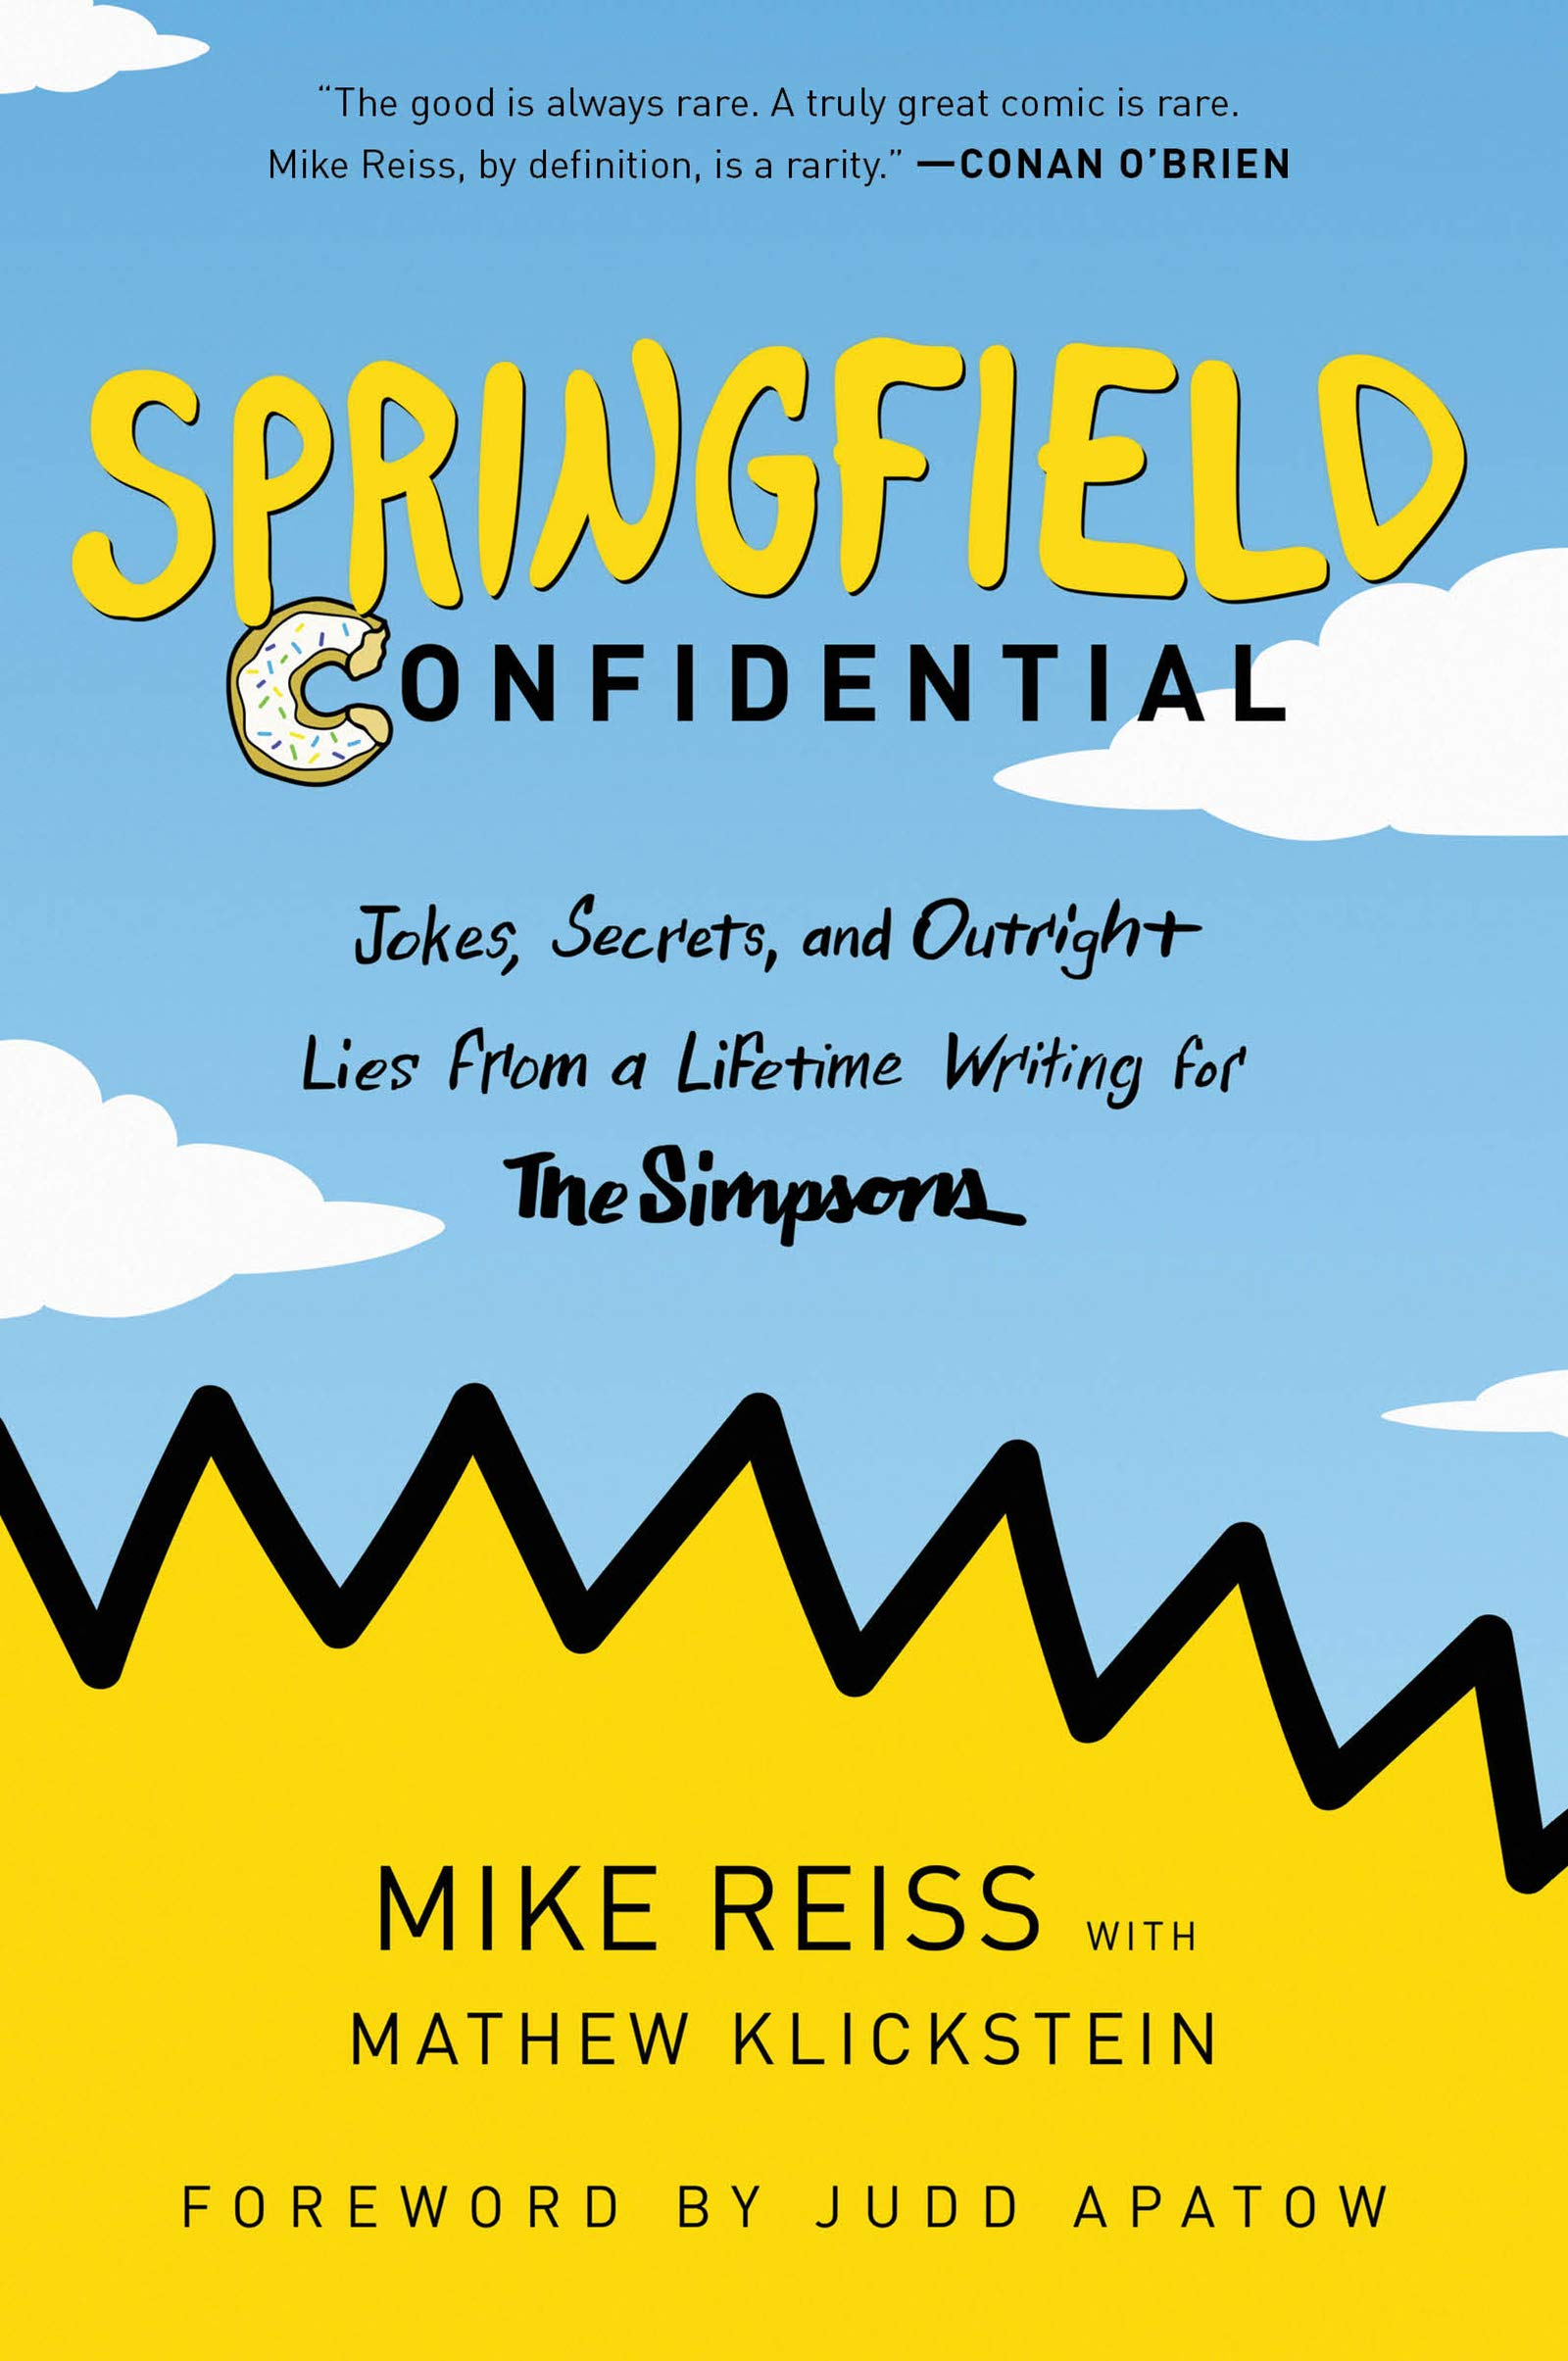 ویکالا · خرید  اصل اورجینال · خرید از آمازون · Springfield Confidential: Jokes, Secrets, and Outright Lies from a Lifetime Writing for The Simpsons wekala · ویکالا